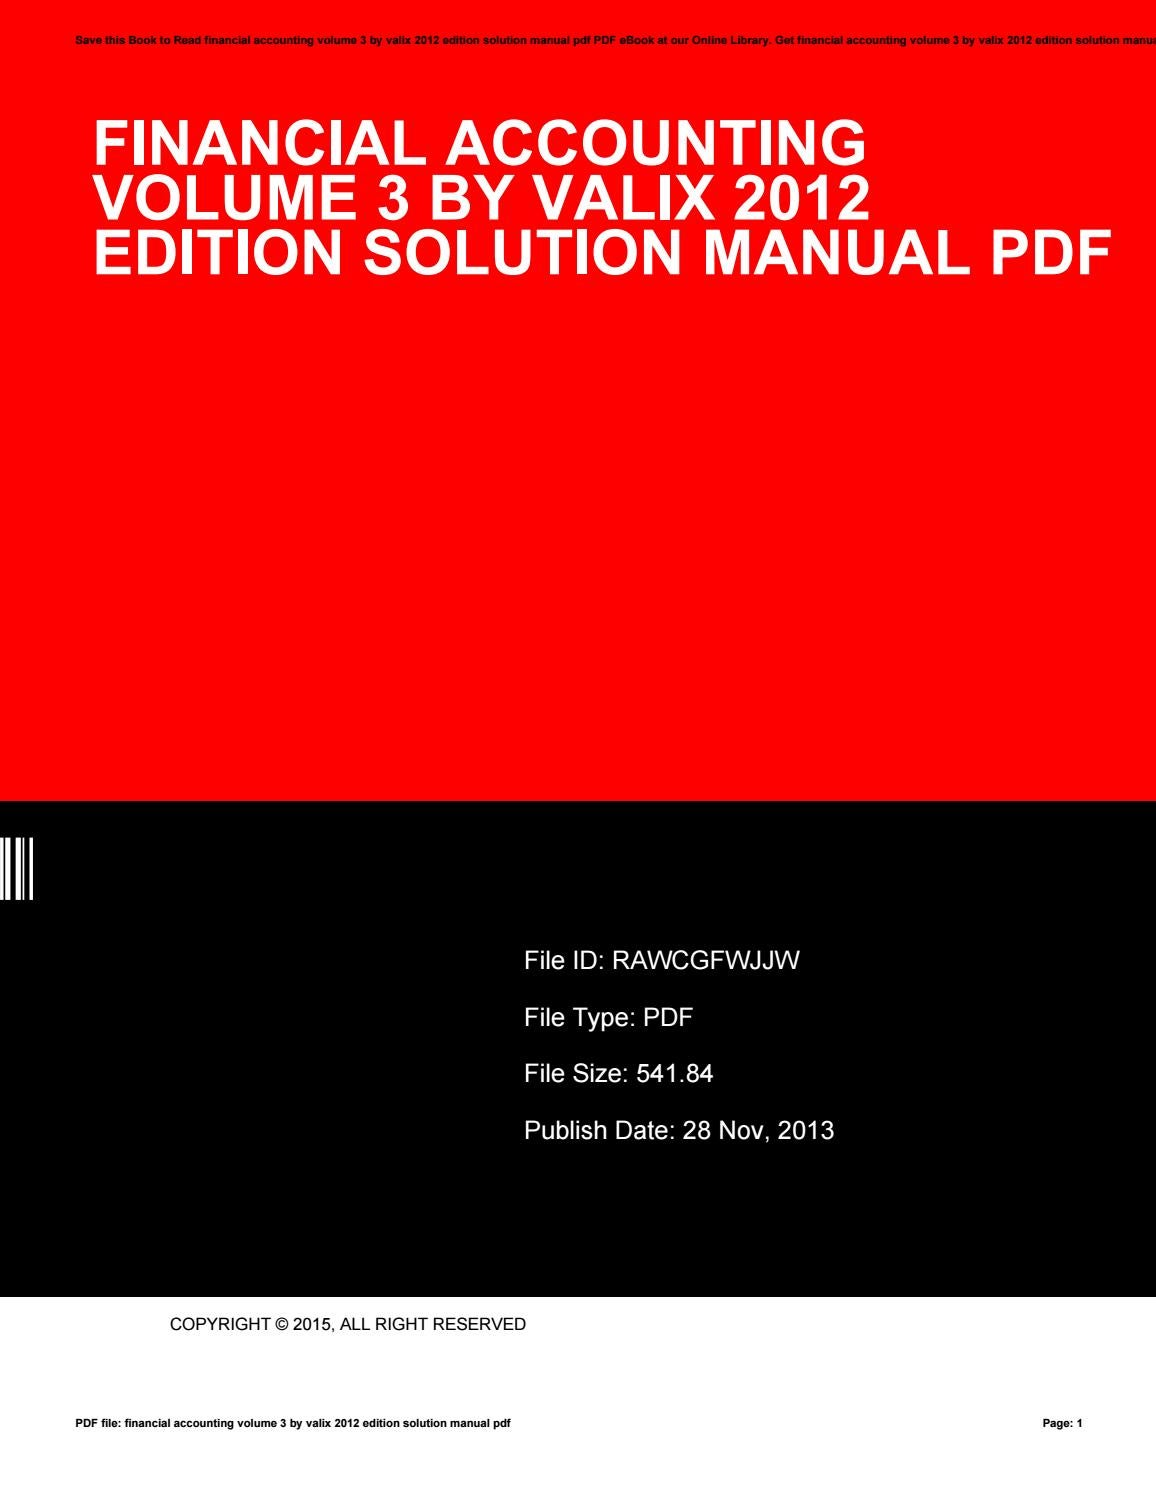 Financial accounting volume 3 by valix 2012 edition solution manual pdf by  JohnBechtol3696 - issuu